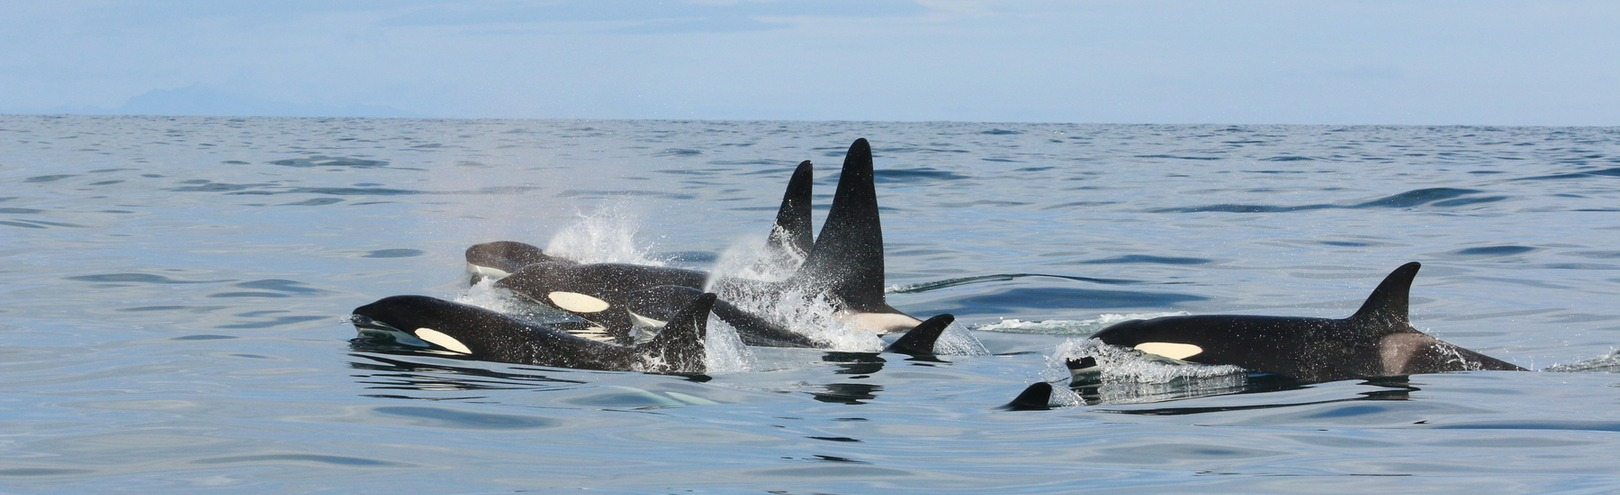 Why do pilot whales harass killer whales? - Available at University of Iceland